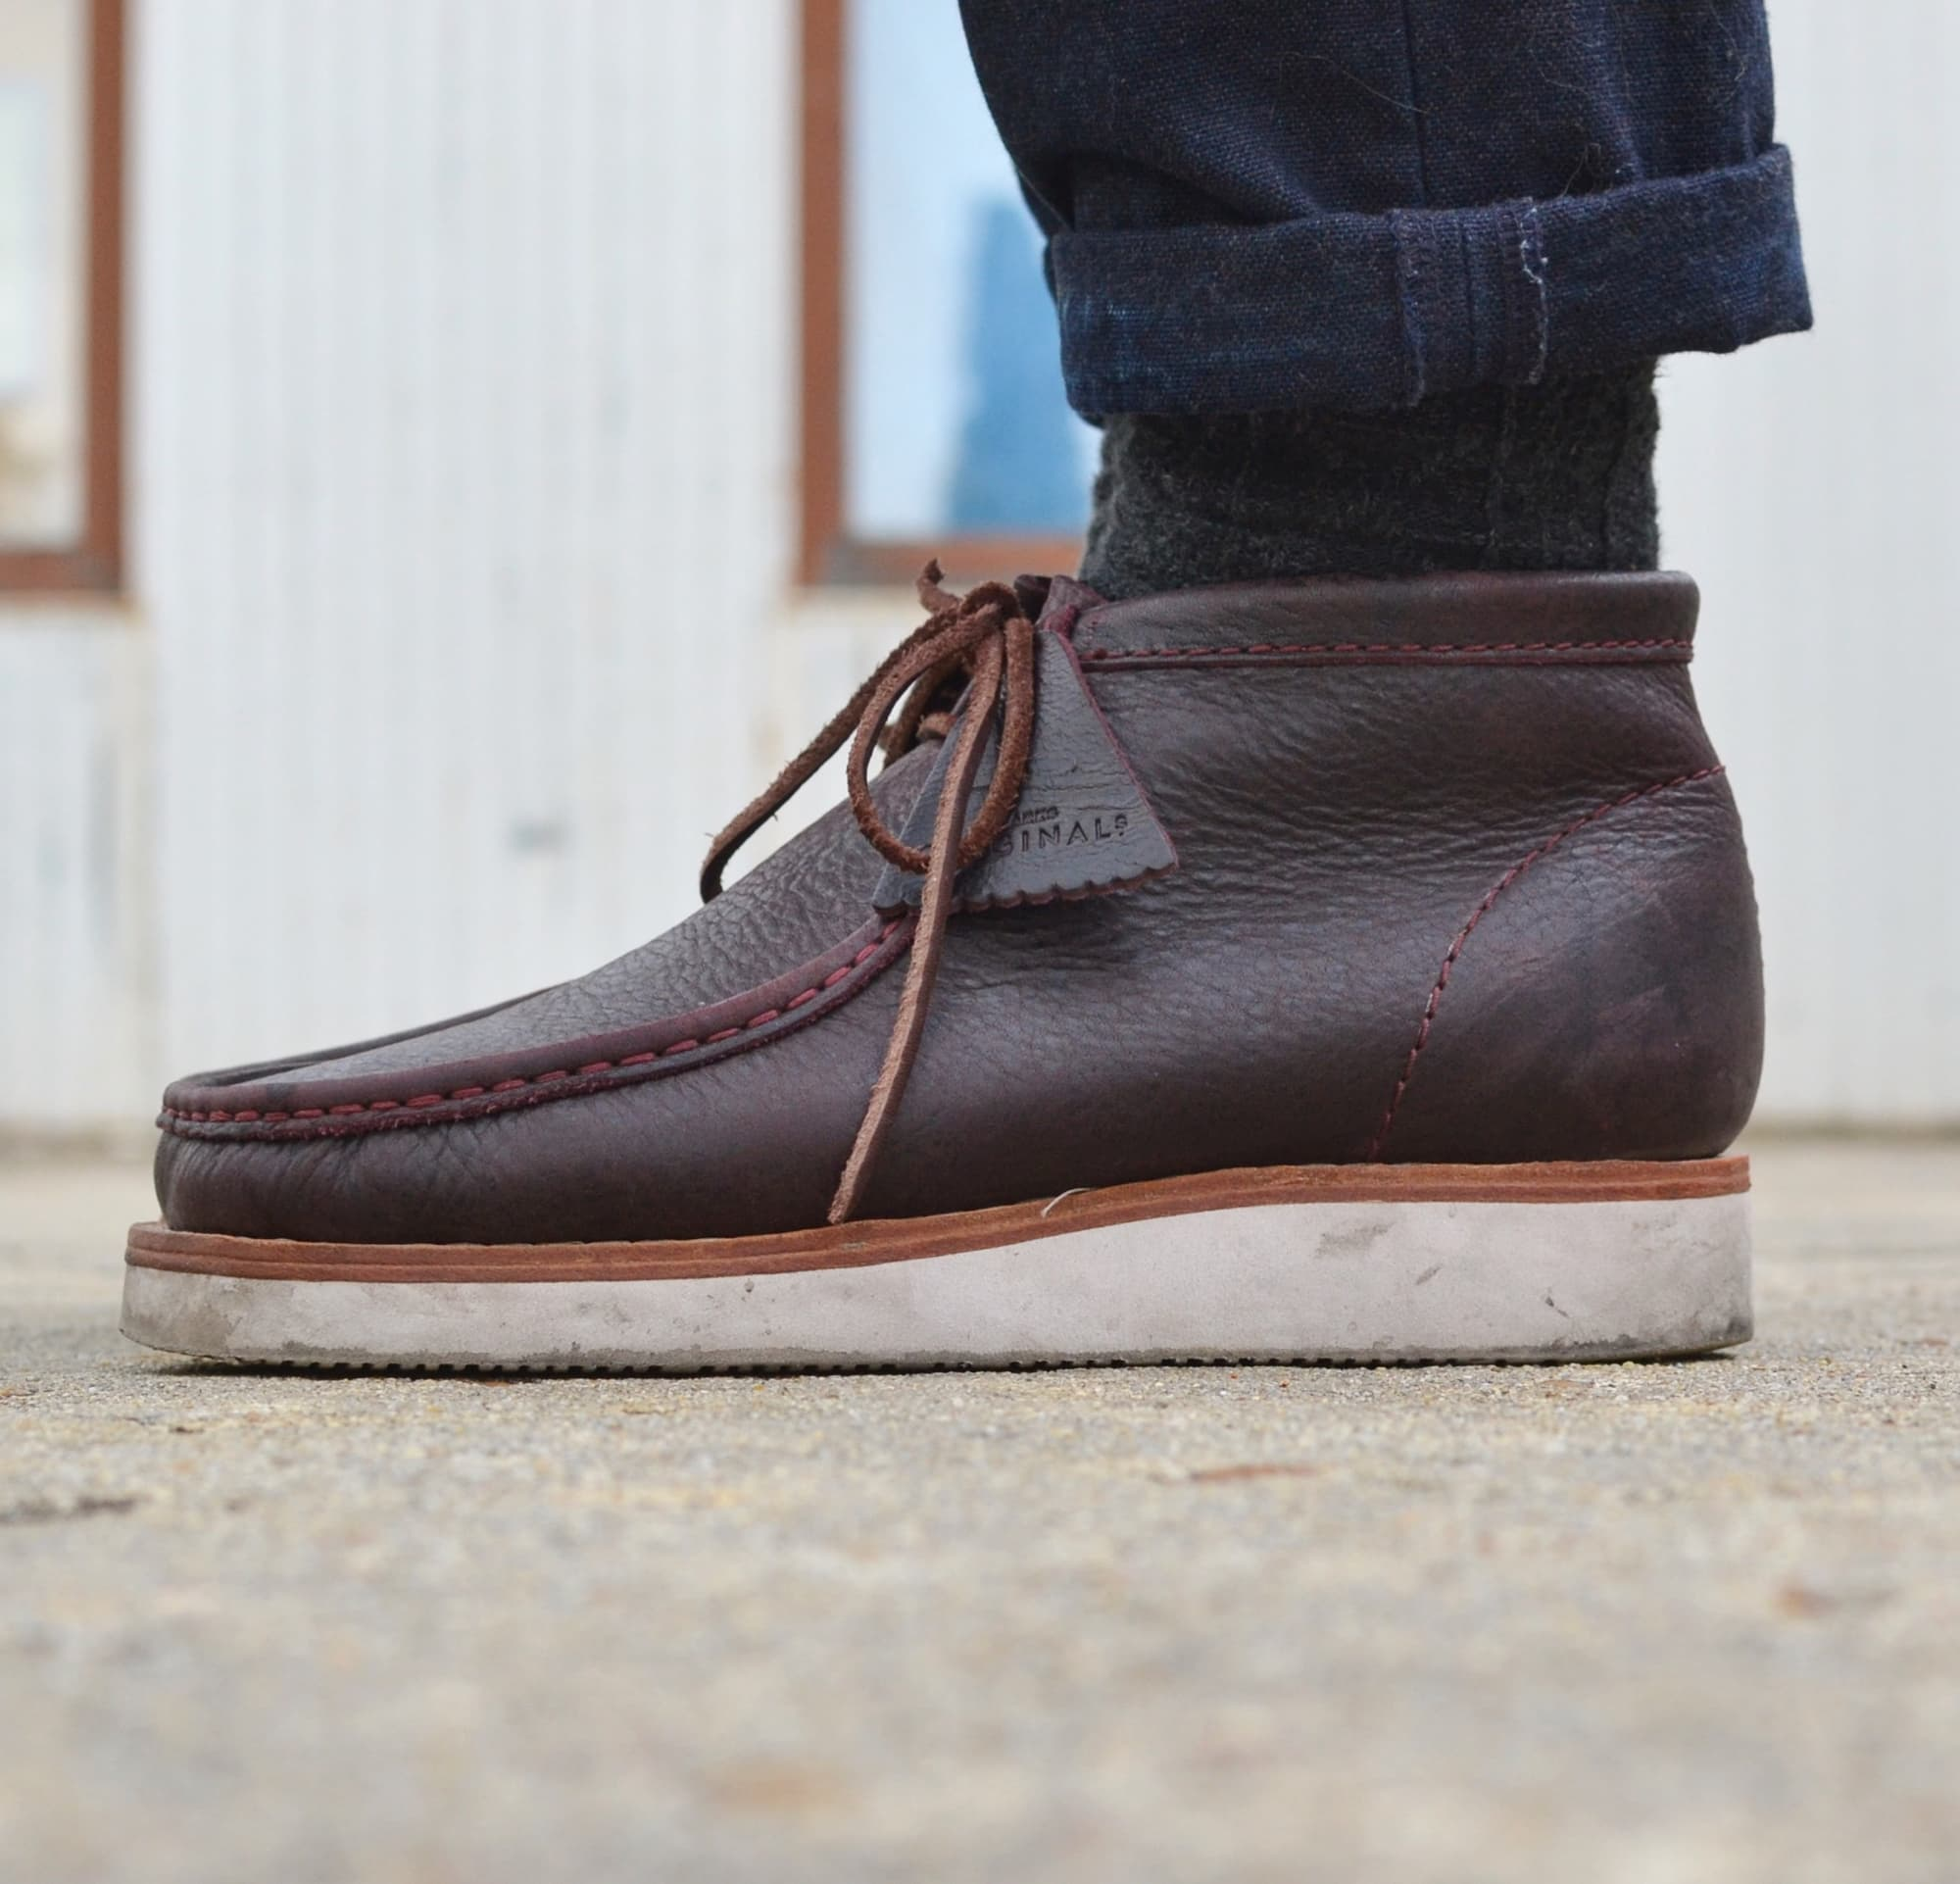 comment porter des Clarks wallabee hike boots burgondy leather & vibram soles